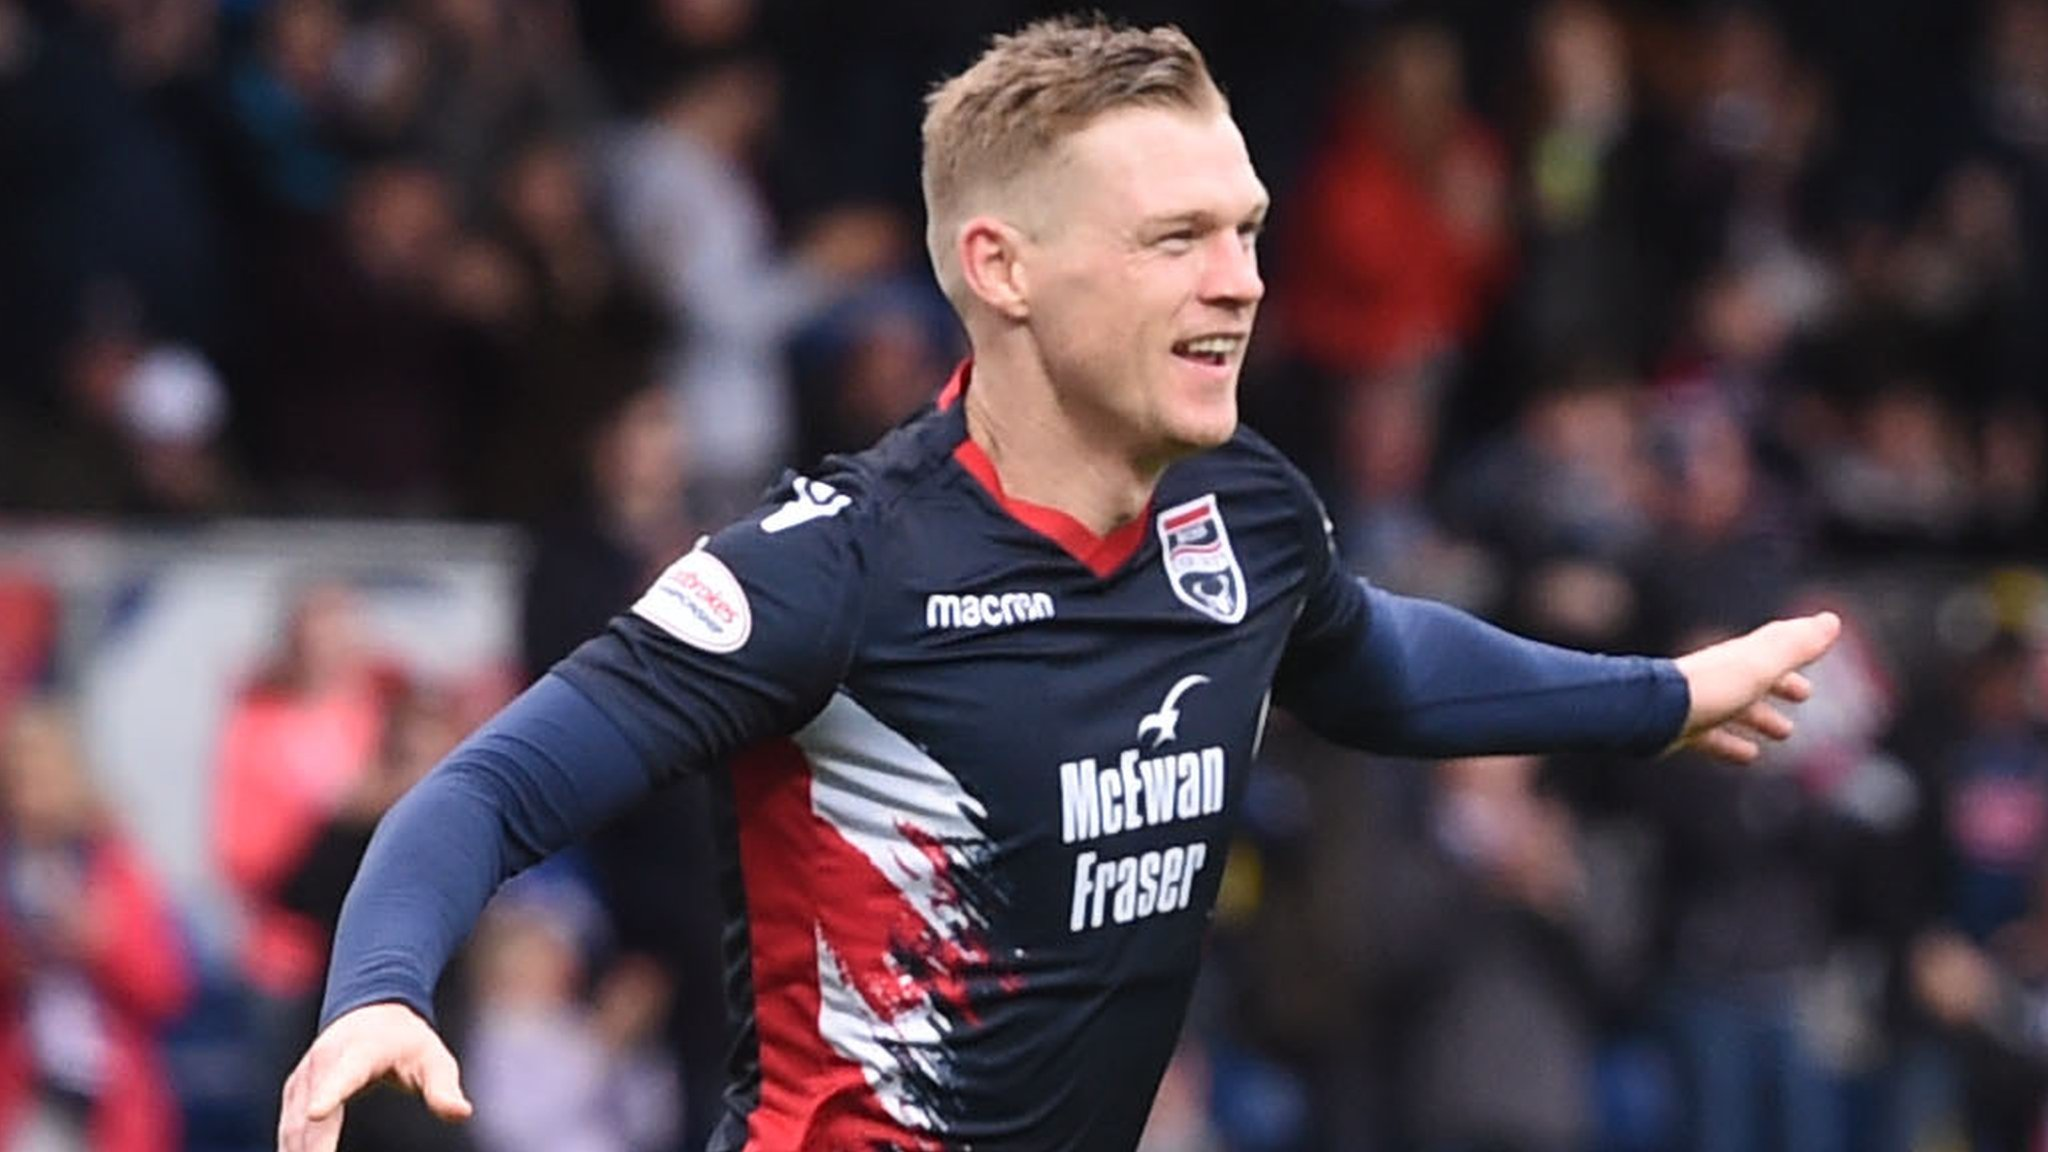 Ross County 2-1 Ayr United: Staggies win to go top of Championship